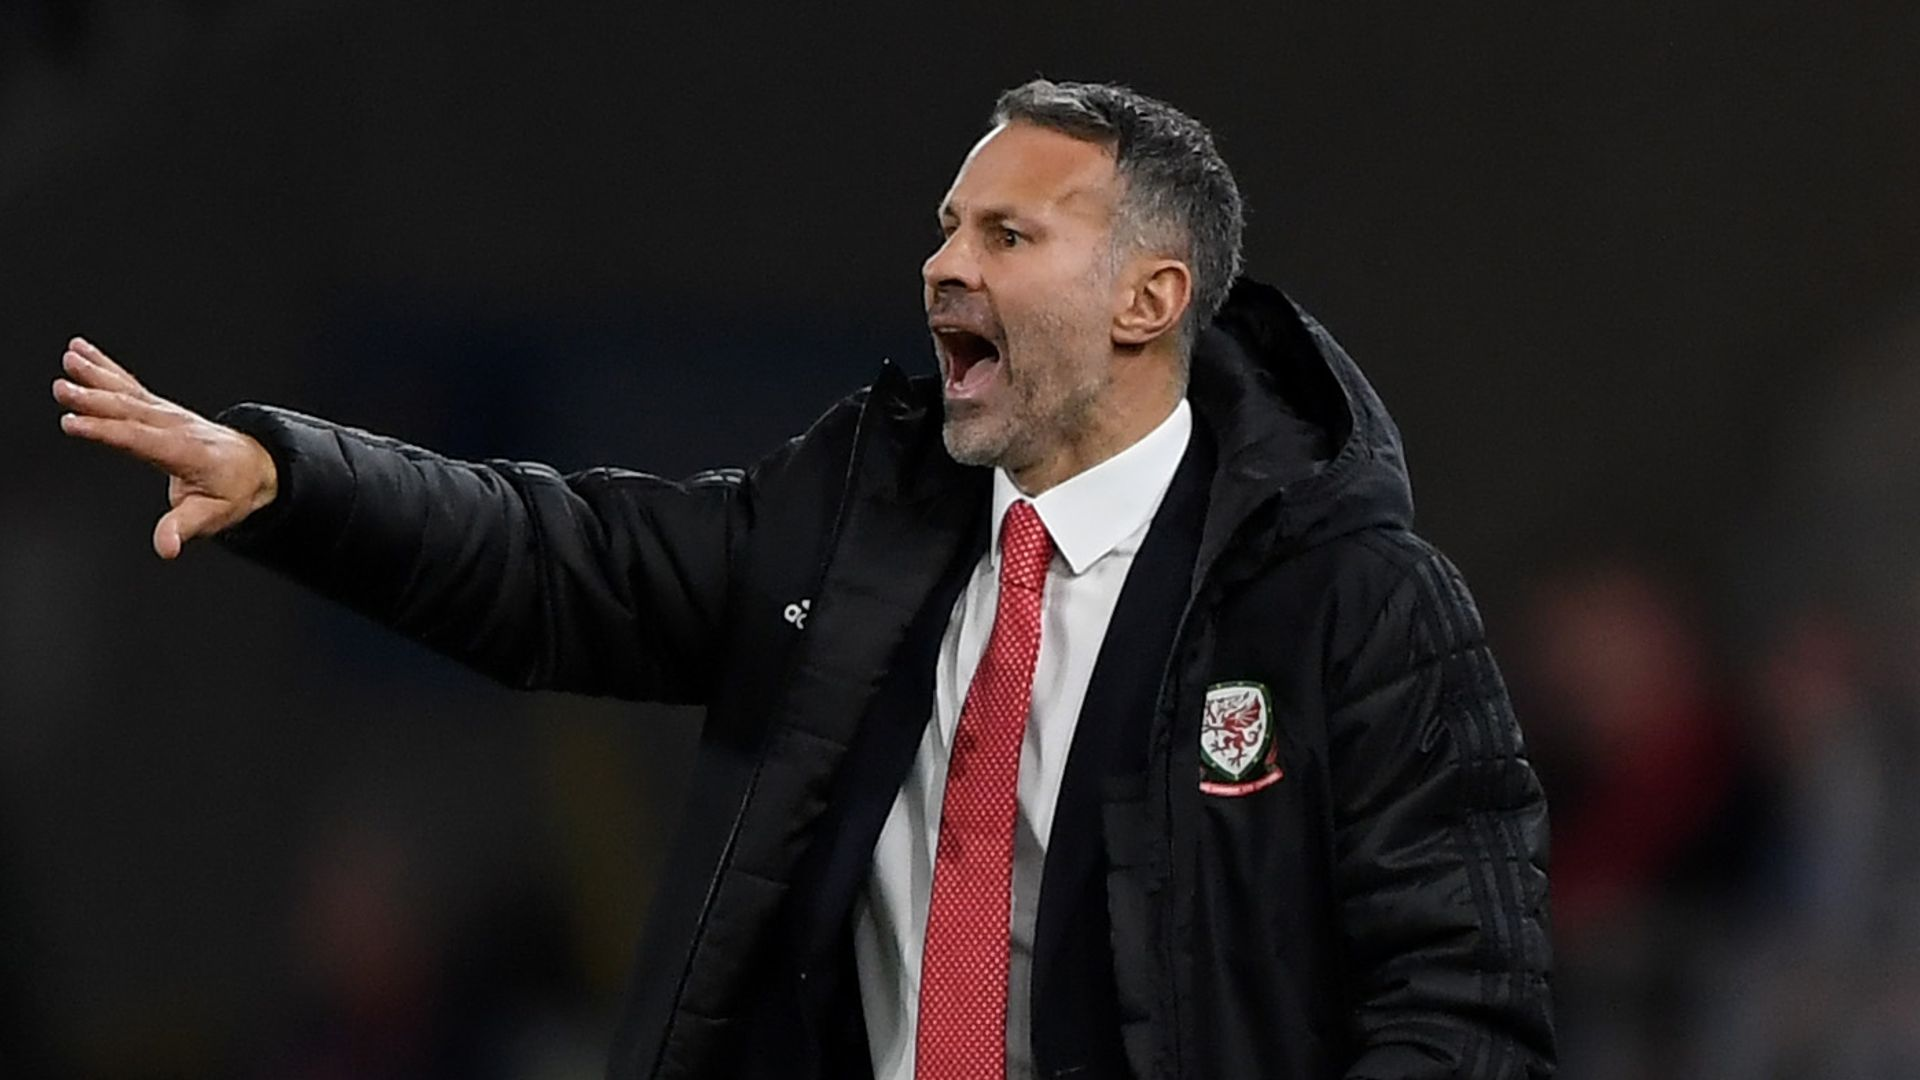 Giggs aims to strike balance with club managers